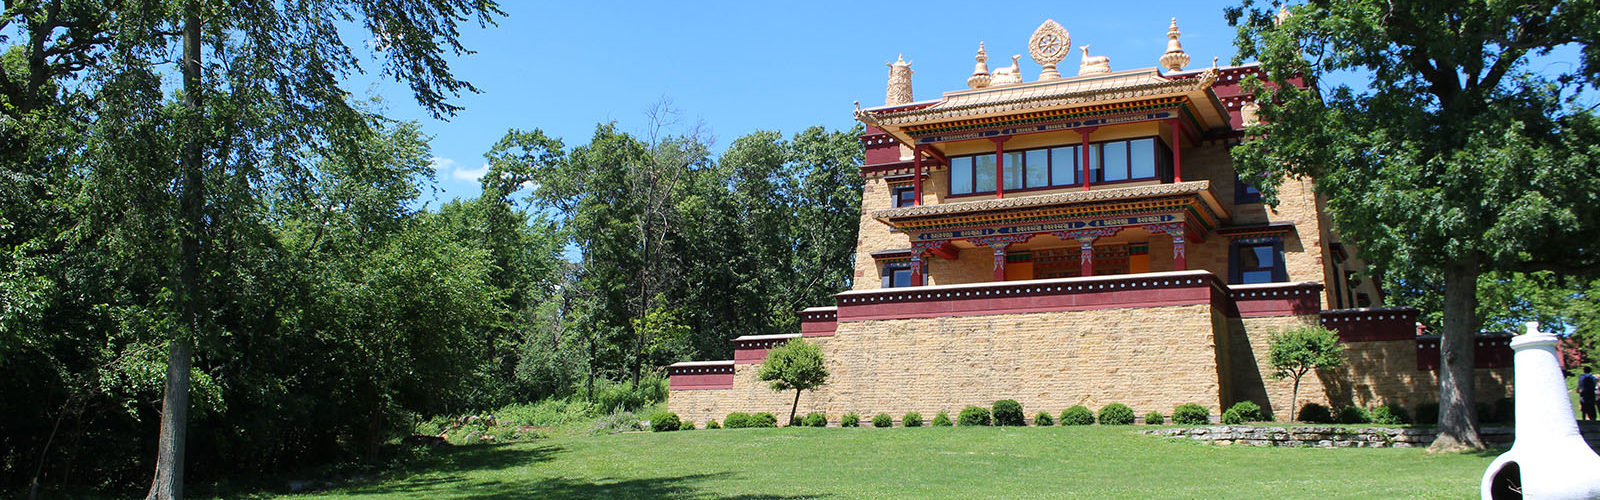 Exterior of Deer Park Temple